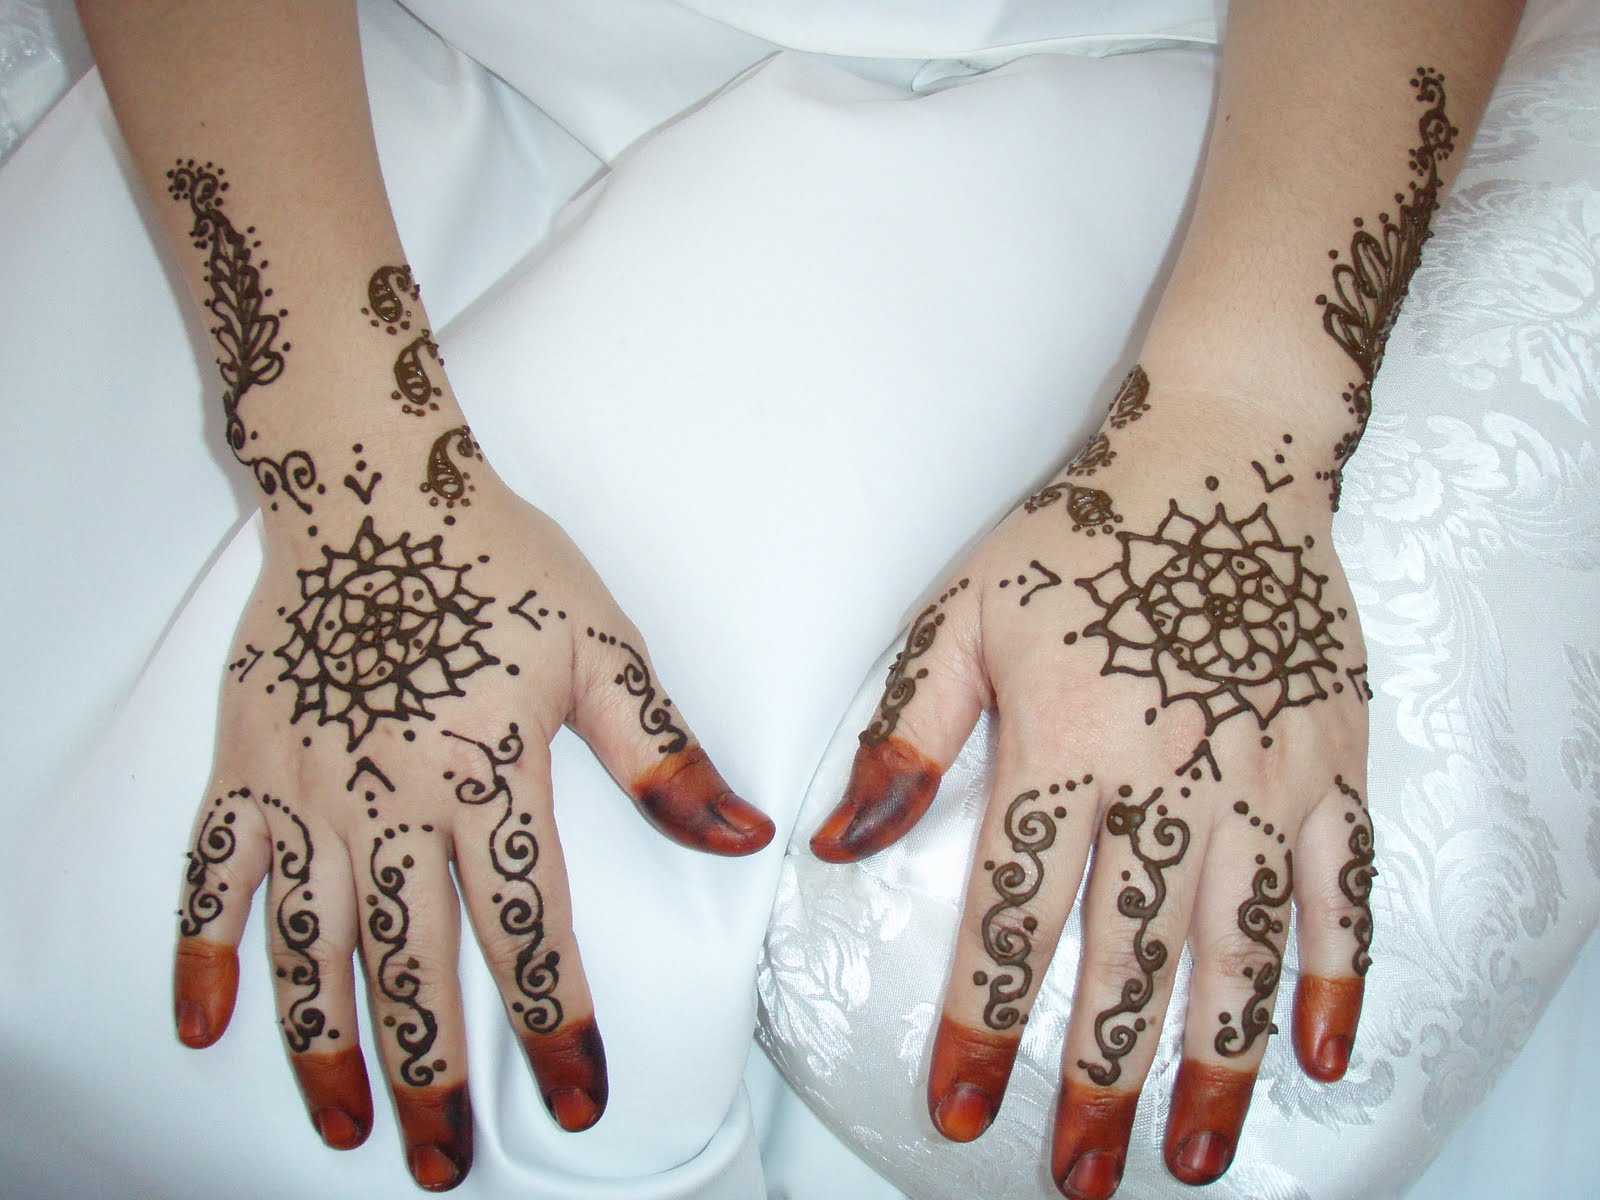 FACE PAINTING KL BODY ART HENNA TATTOO Inai Mehendi For A Bride